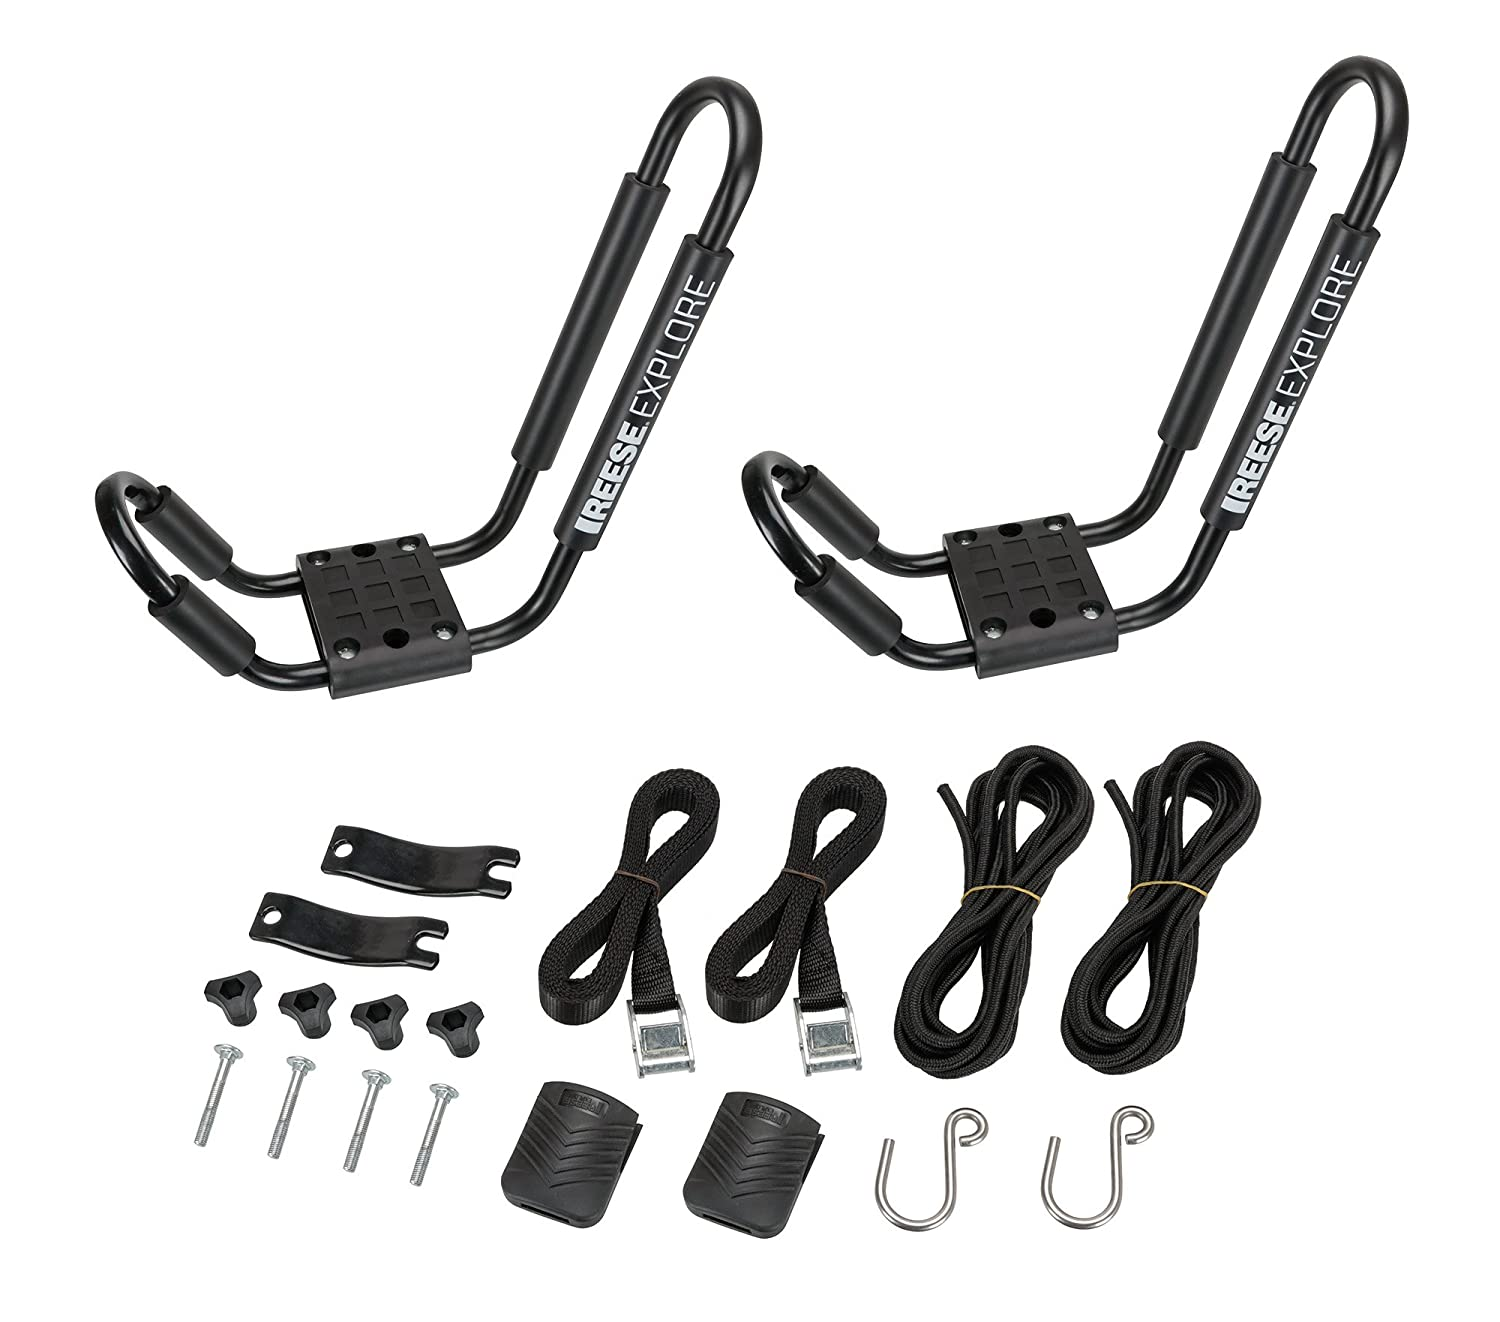 Reese Explore 1394900 J-Rac Kayak Carrier